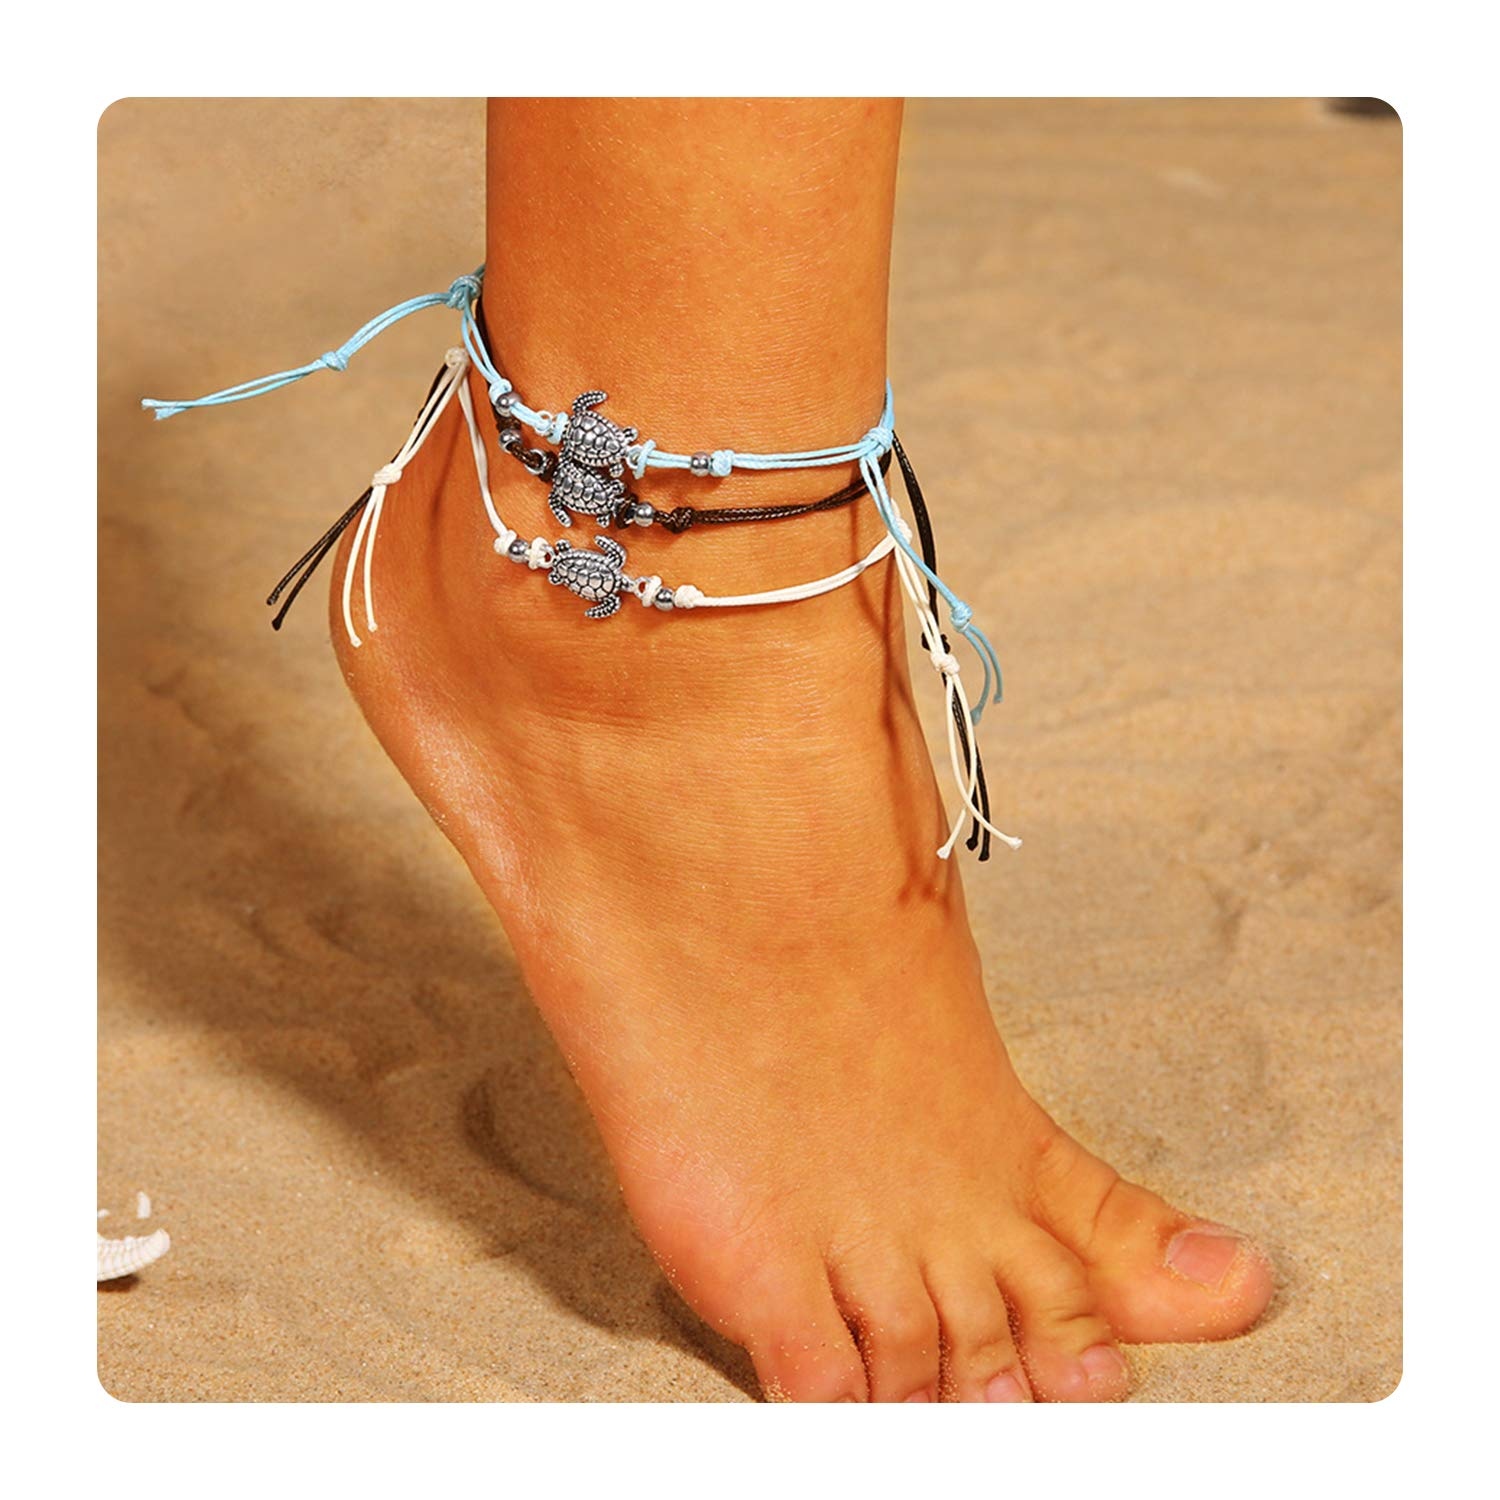 Esberry Beach Anklets Sea Turtle Anklet Wax Rope Charm Boho Infinite Foot Chains Handmade Jewelry for Women and Girls(3pcs) B07G13J5FL_US